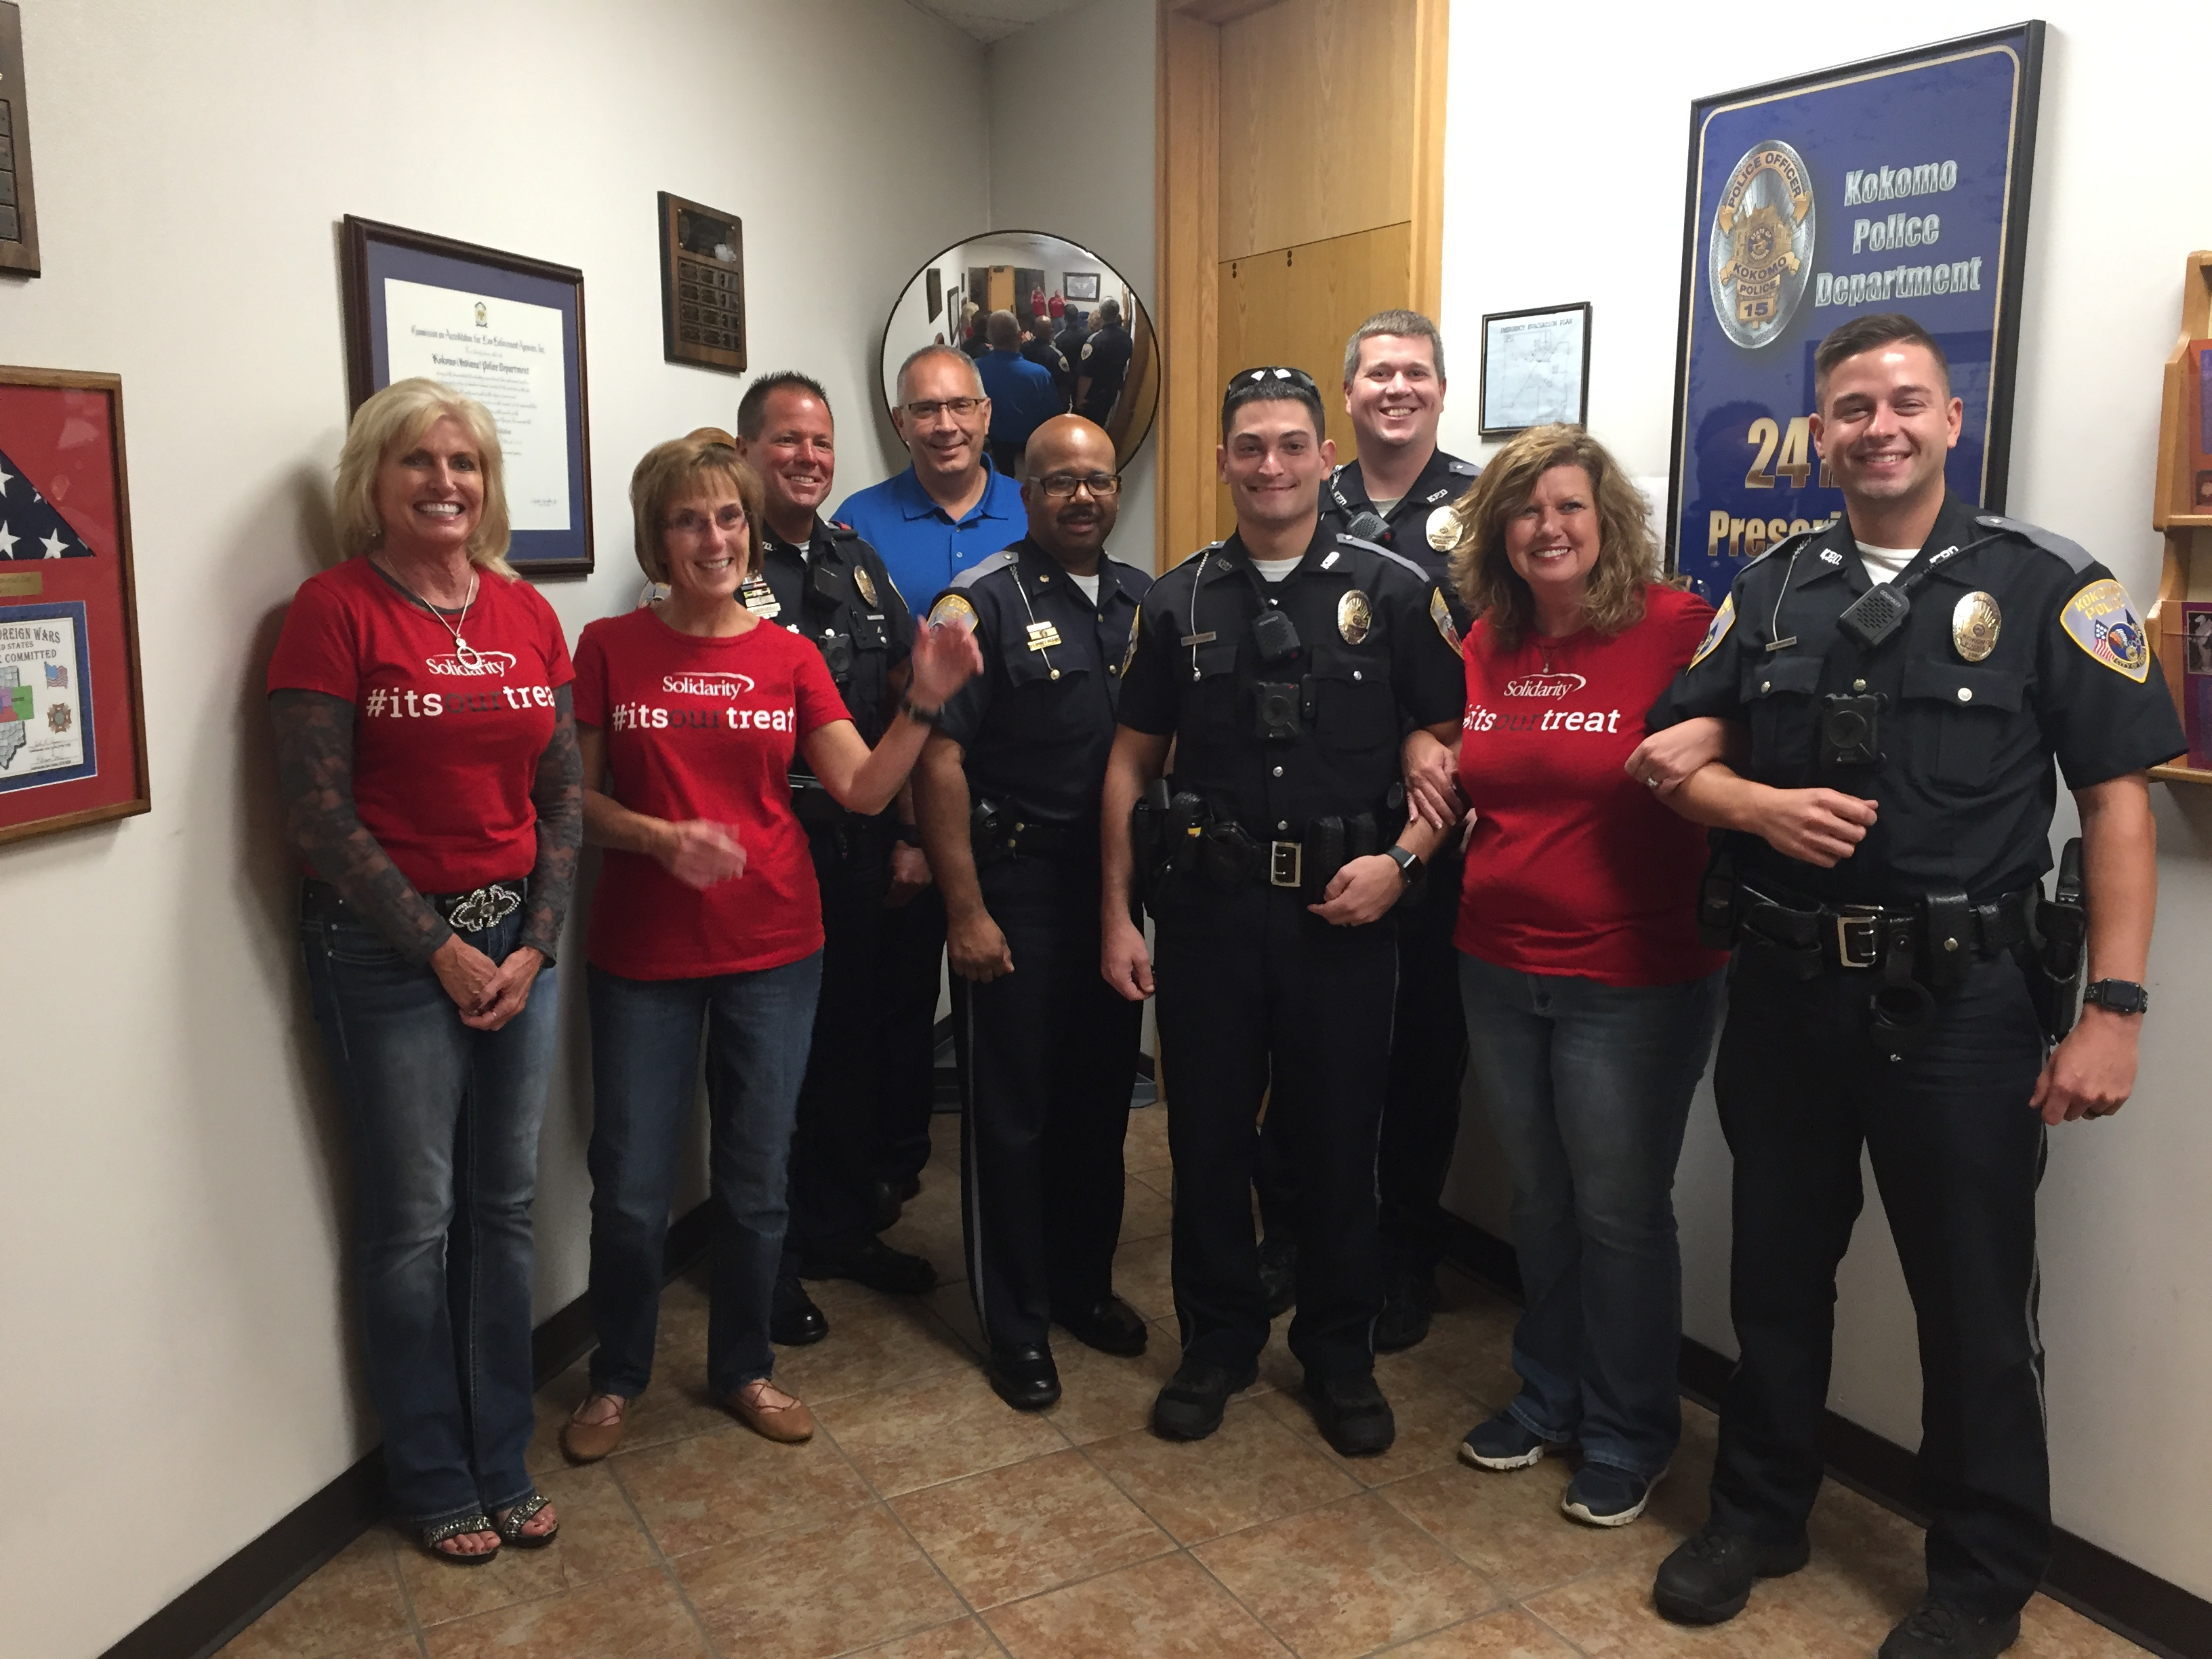 Solidarity Surprise Squad with the Kokomo Police Department